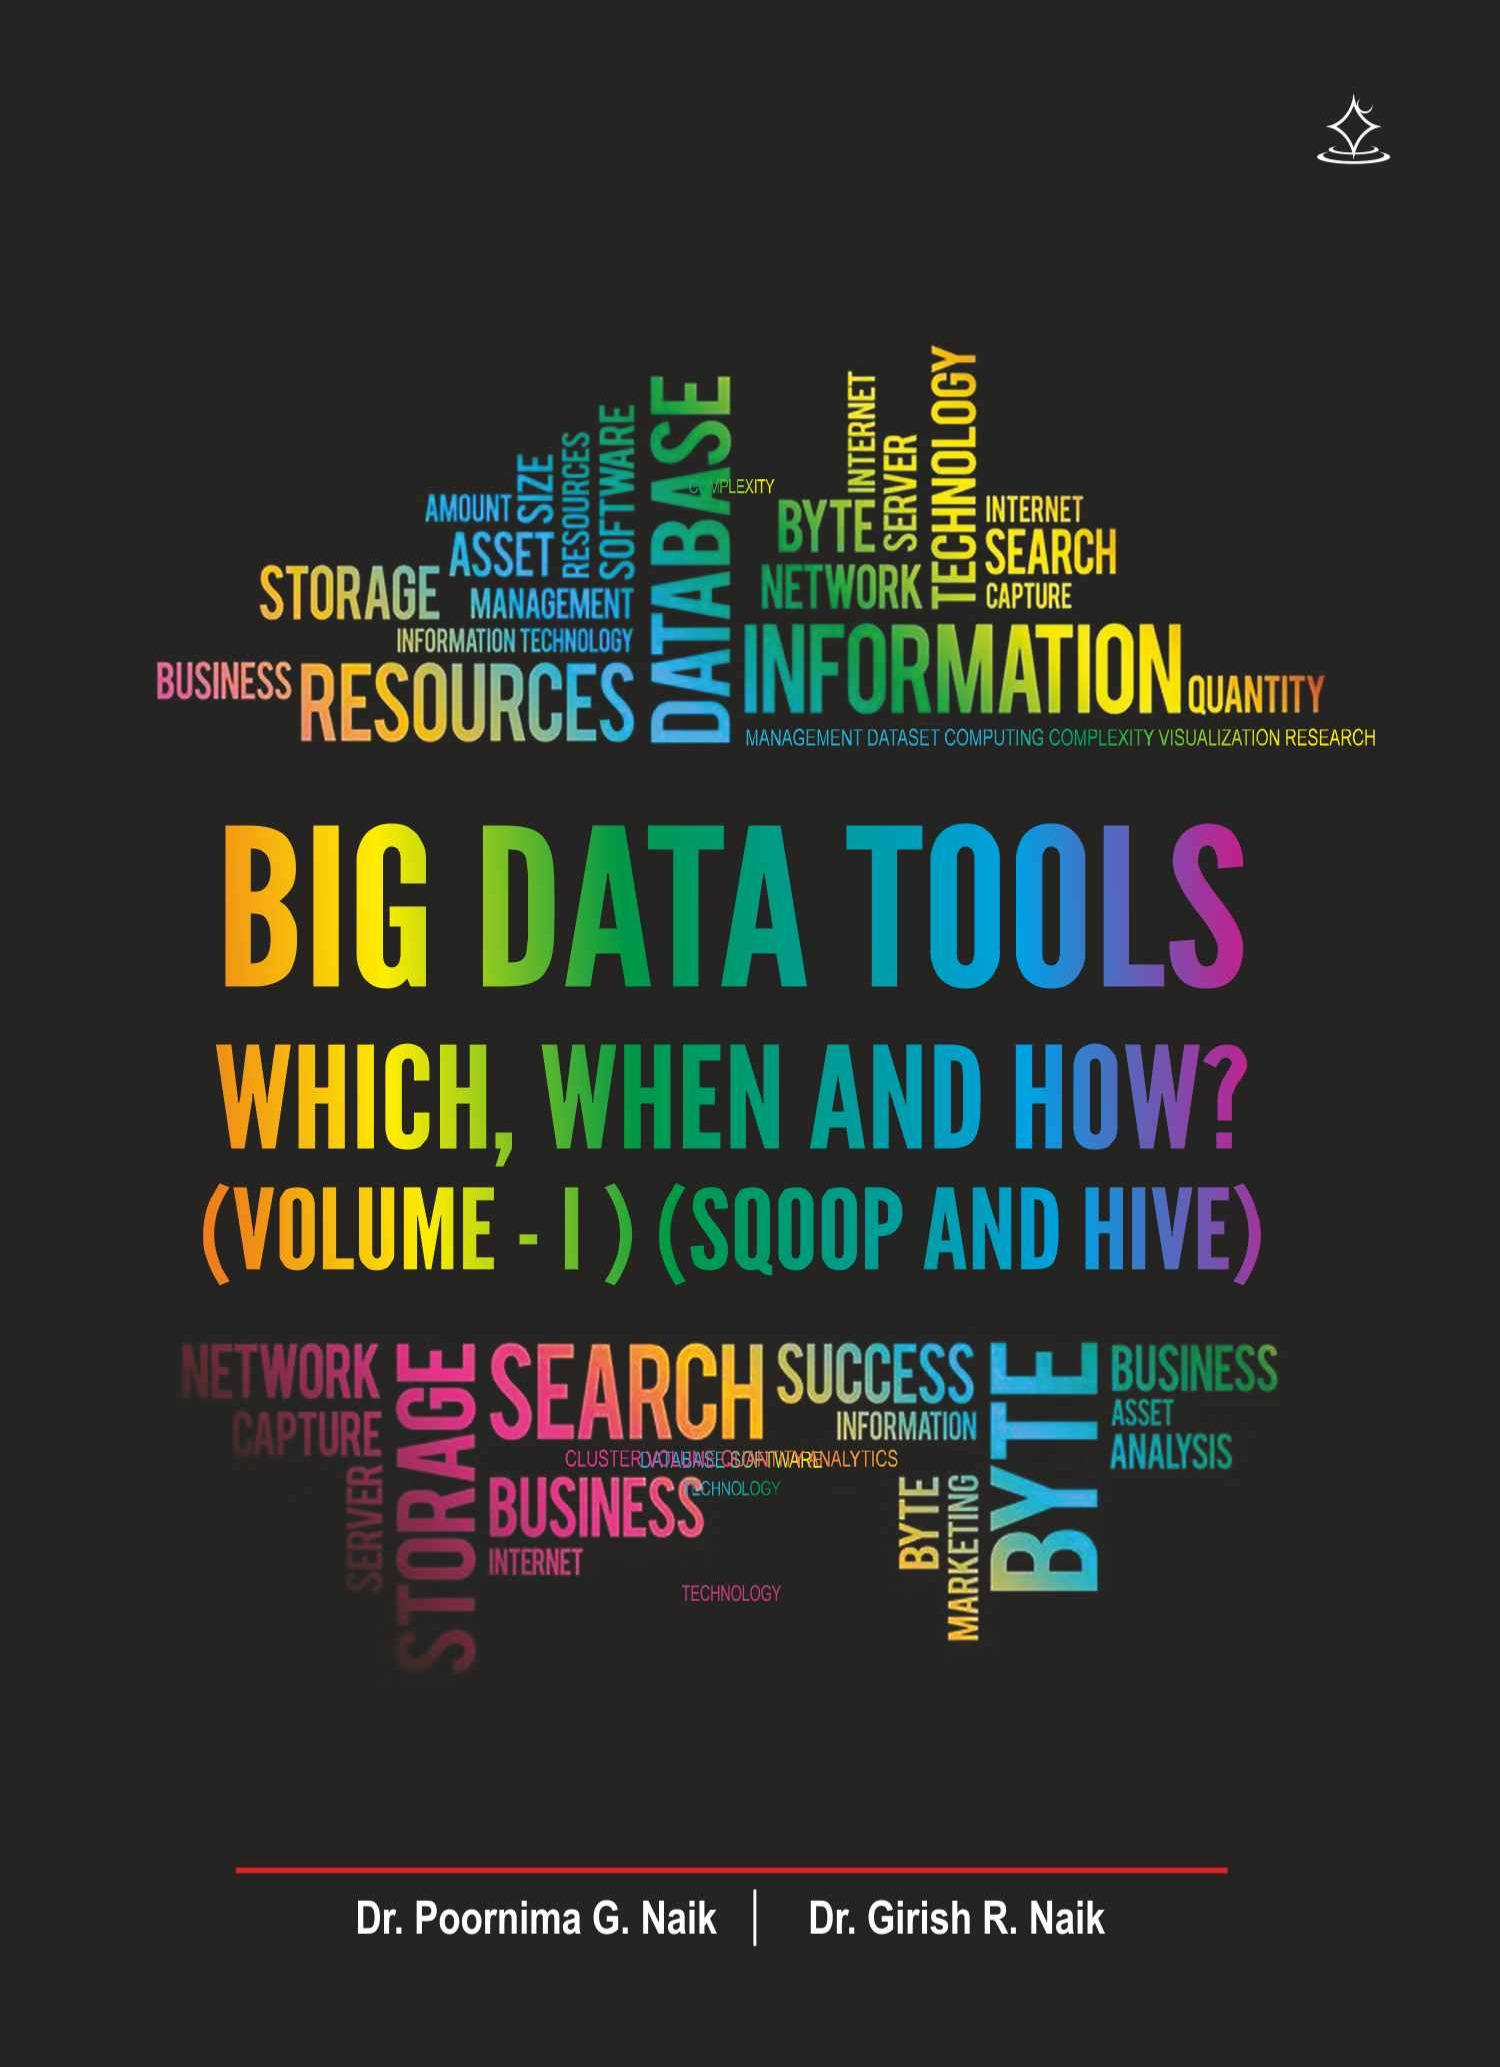 Big Data Tools – Which, When and How?